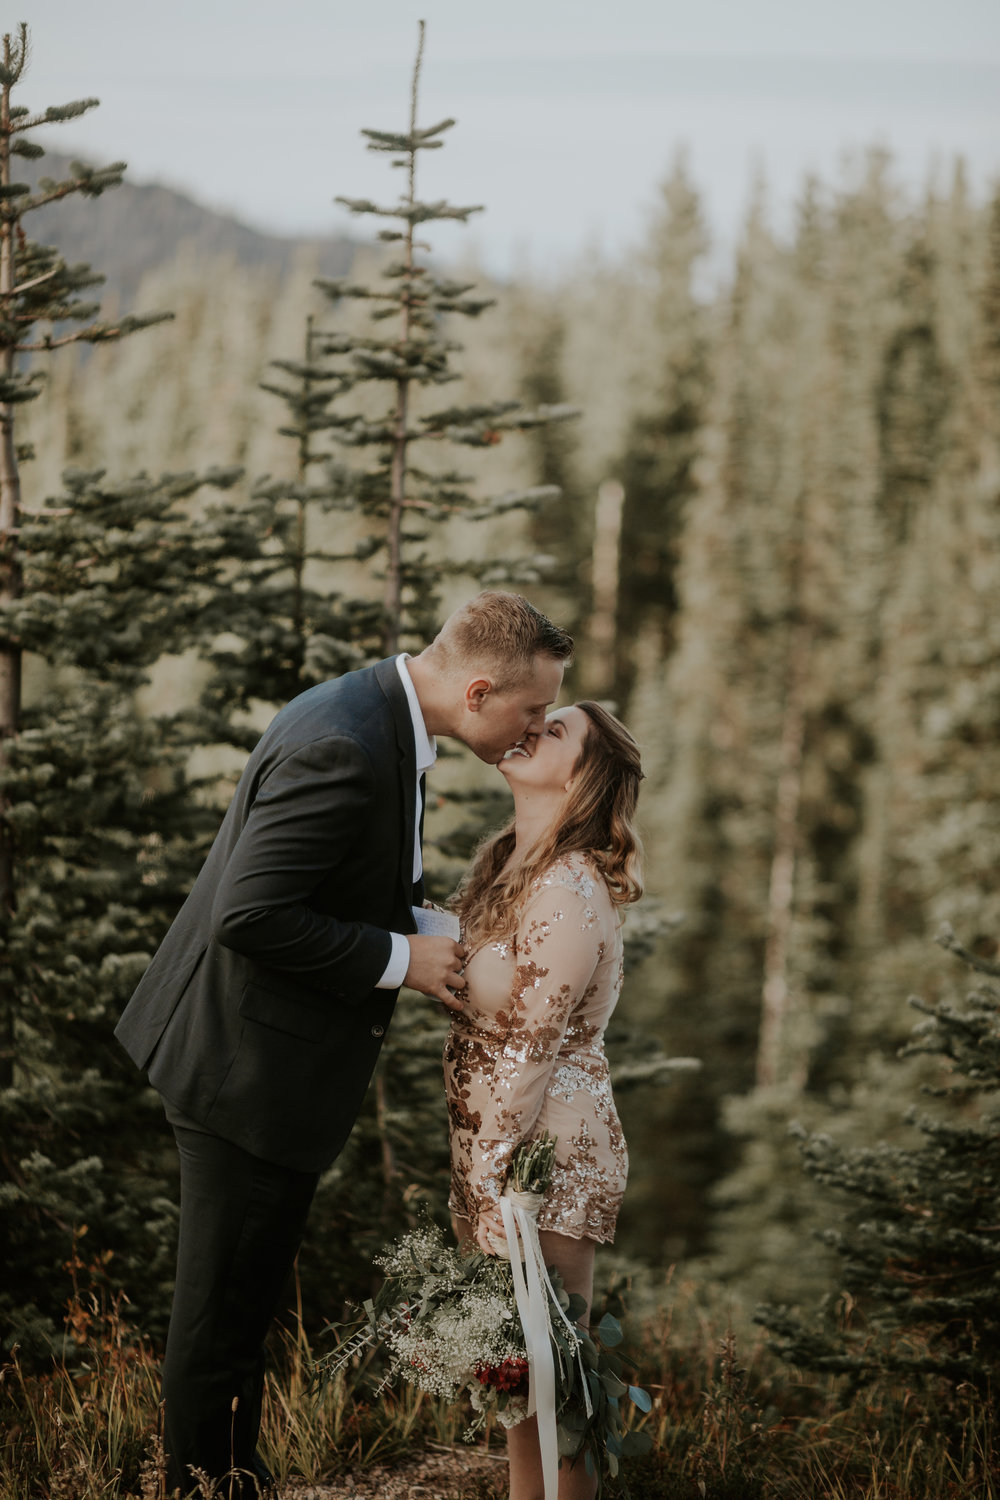 PNW-Hurricane-Ridge-Port-Angeles-Washington-elopement-photographer-kayla-dawn-photography-kayladawnphoto-wedding-anniversary-photoshoot-olympic-peninsula-177.jpg